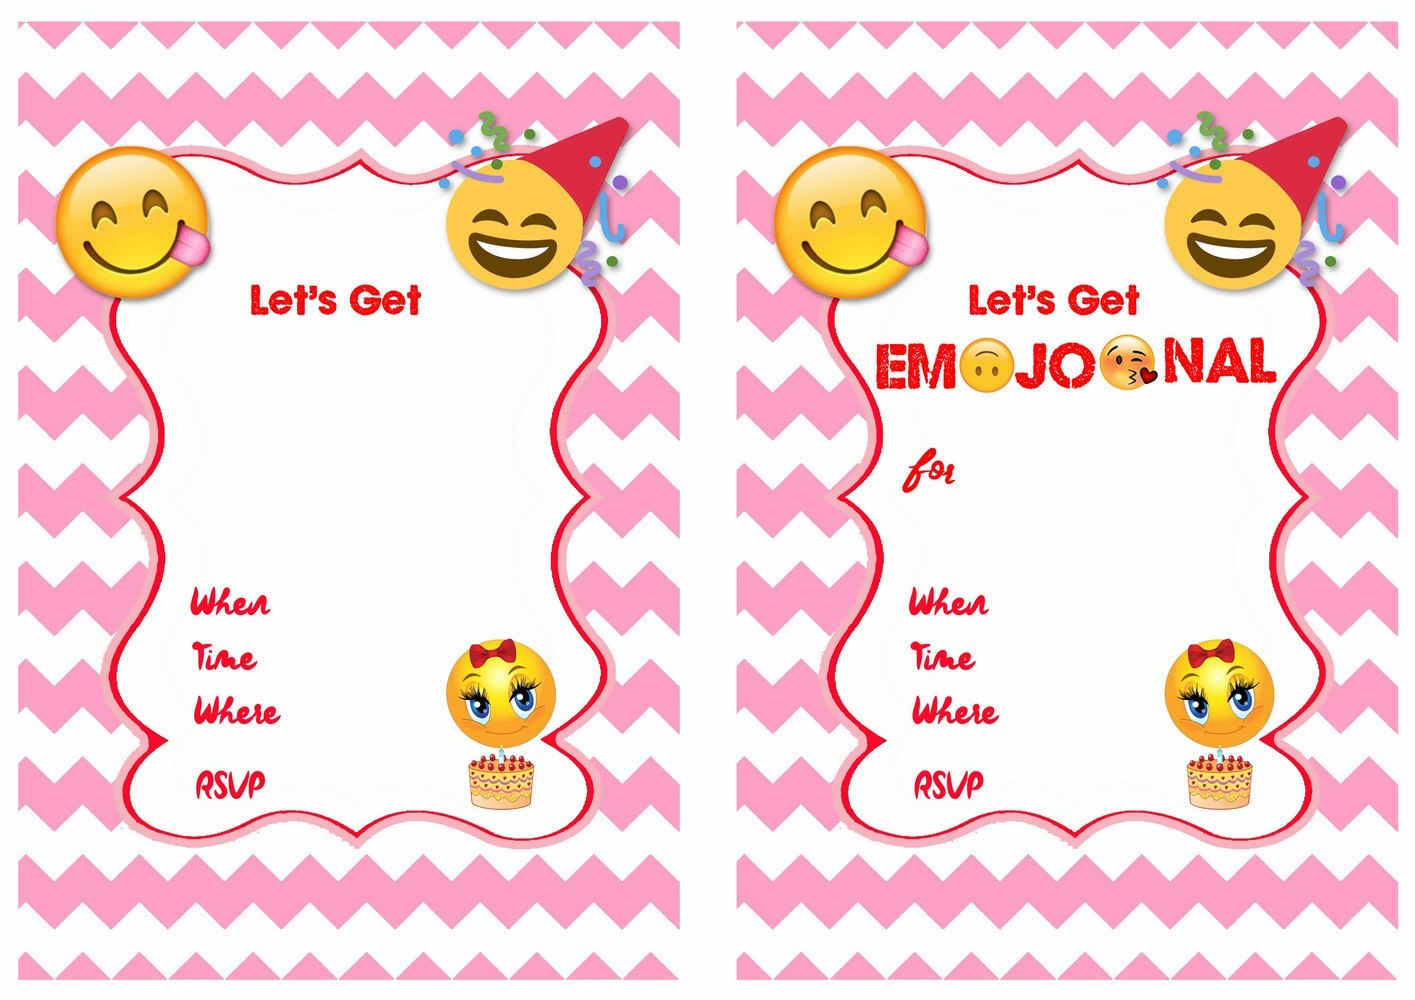 photograph about Emoji Invitations Printable Free called Emoji Invites Printable FreeKitty Youngster Appreciate